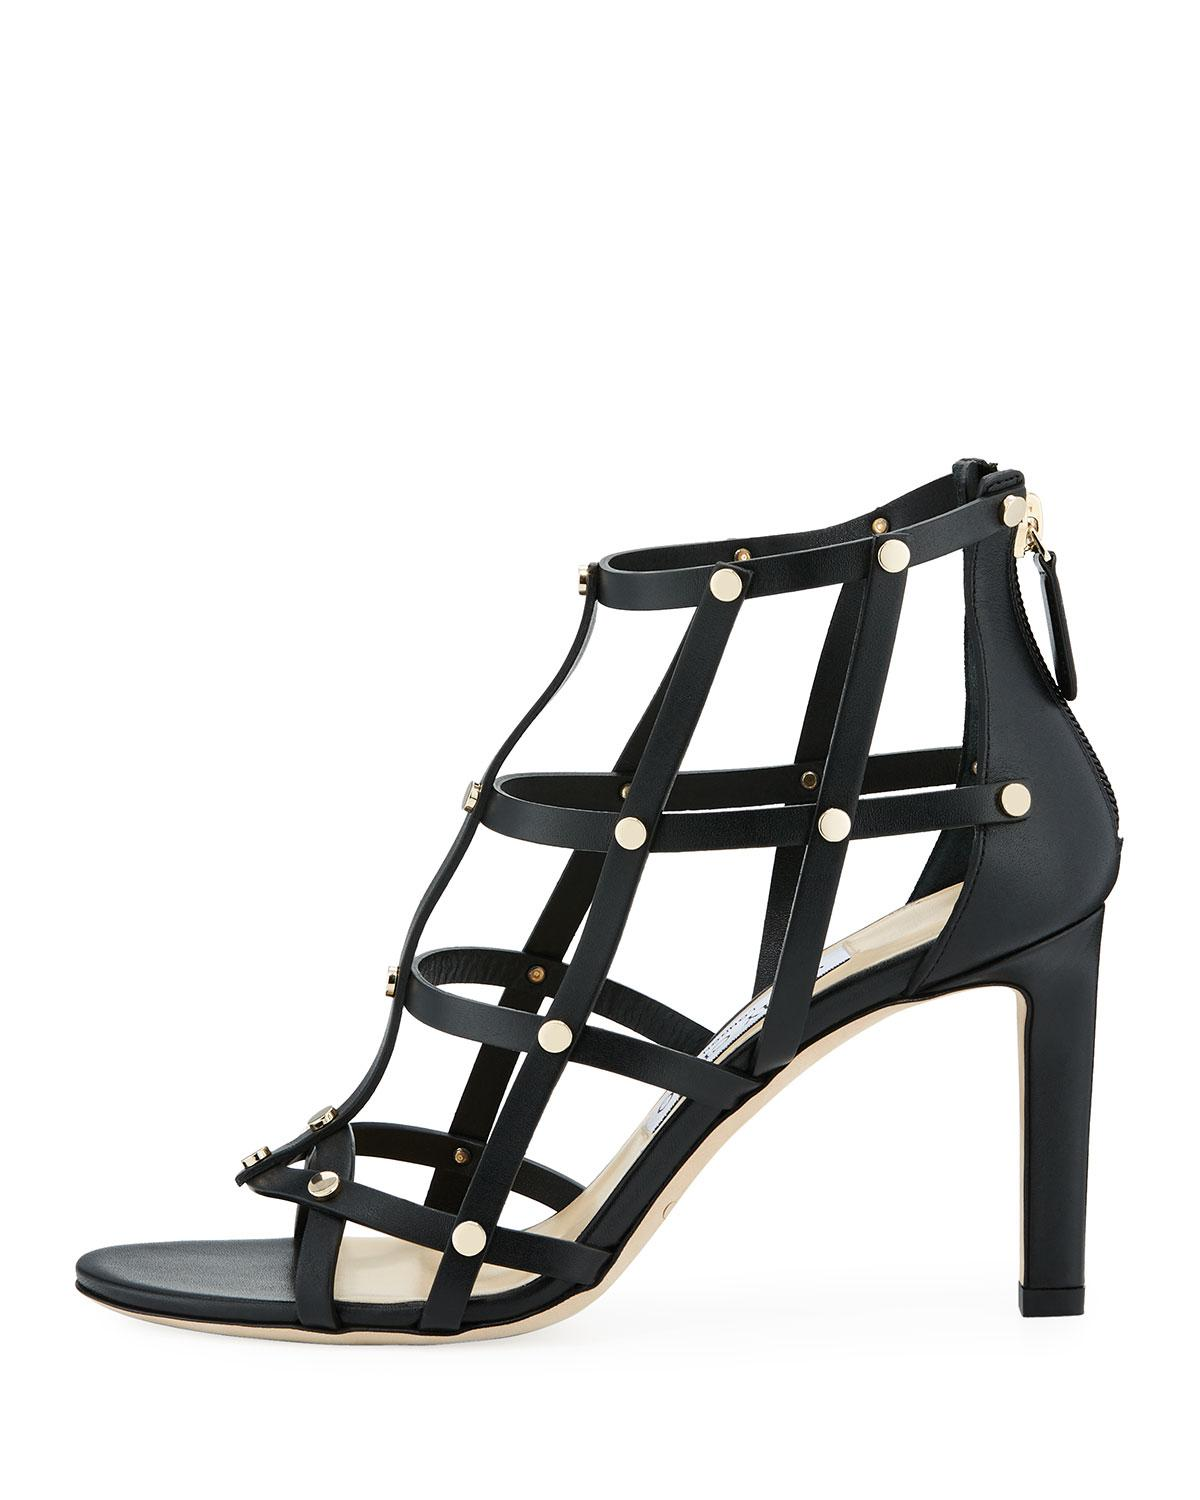 18ec3ae3f69c Lyst - Jimmy Choo Tina 85mm Studded Leather Cage Sandal in Black